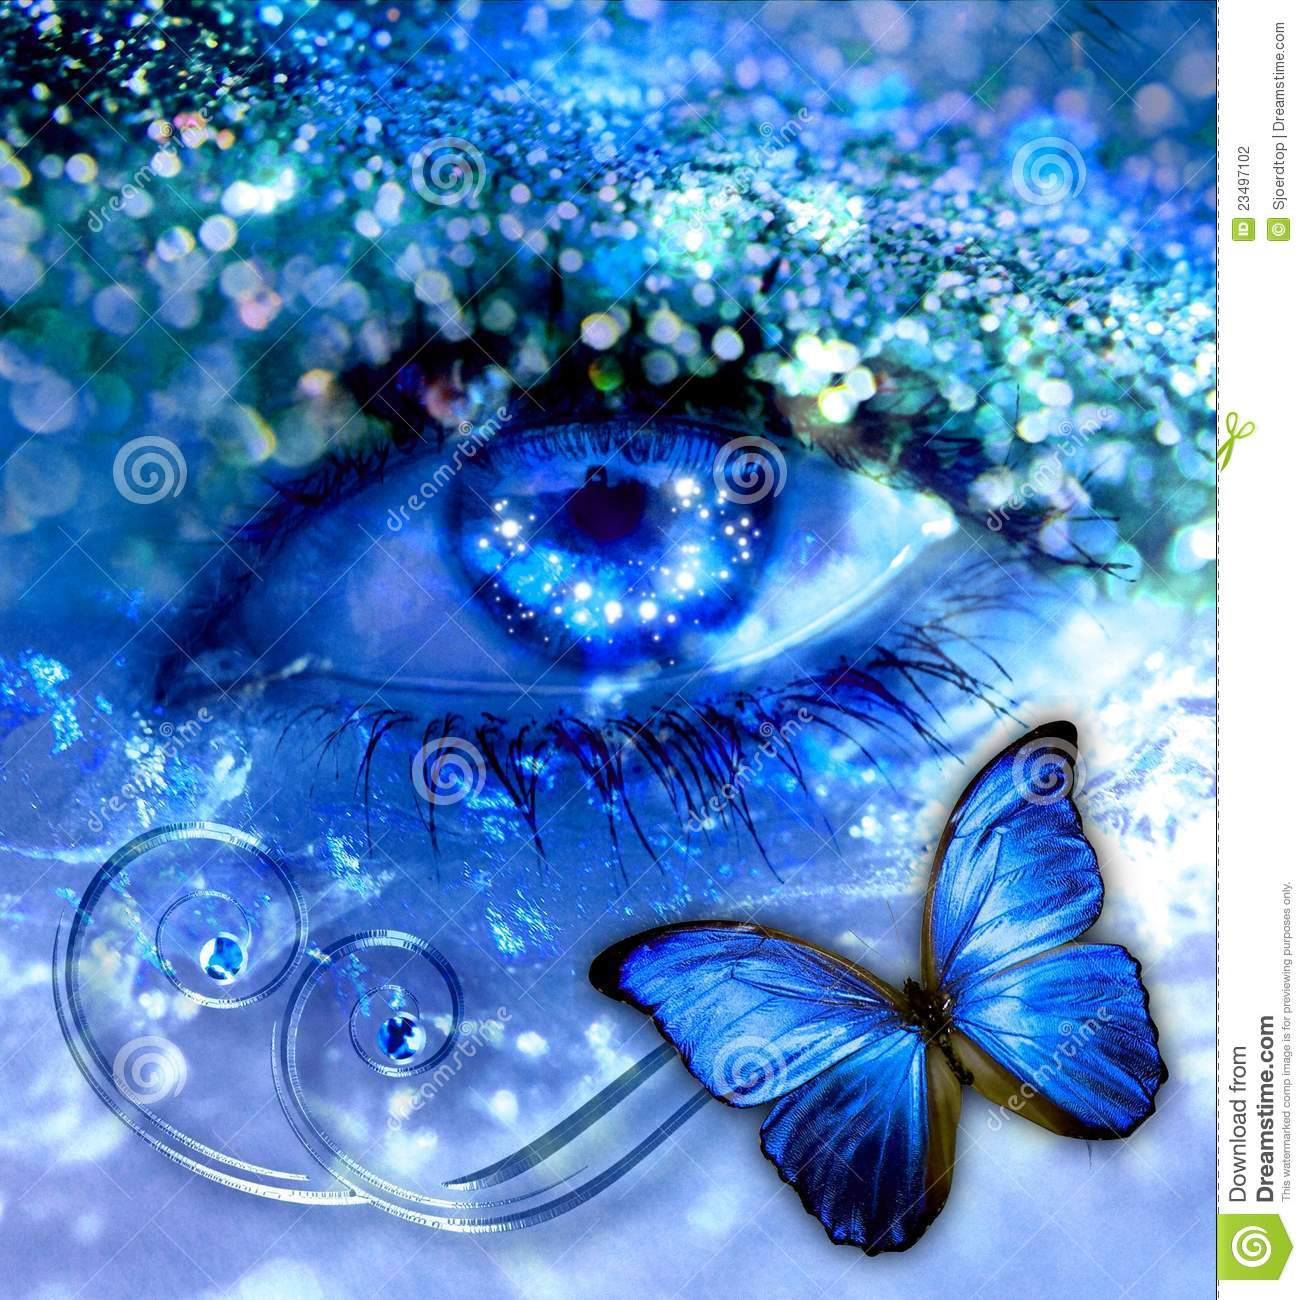 Kiss Wallpaper Full Hd Blue Eye With A Butterfly Stock Photo Image Of Background